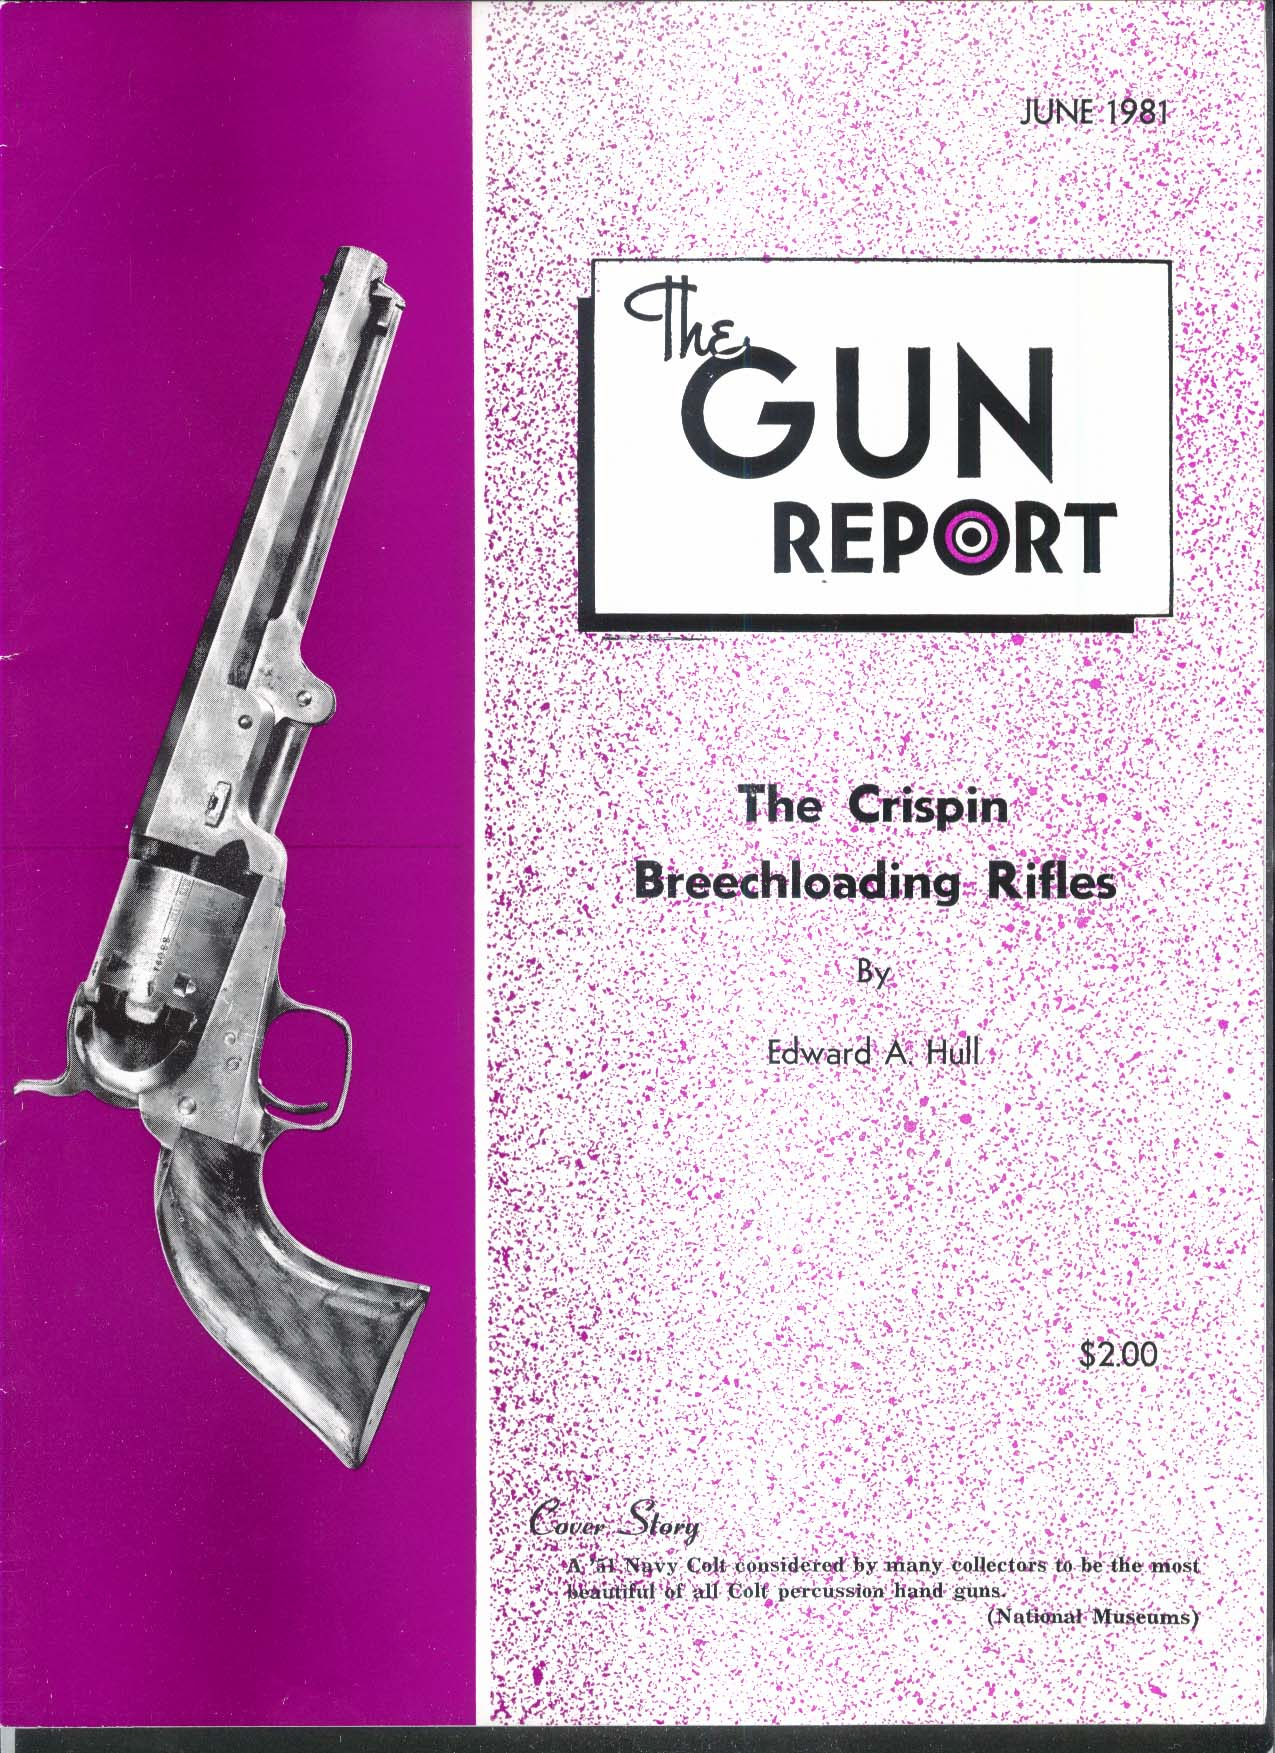 GUN REPORT Crispin Breechloading Rifles Navy Colt 6 1981